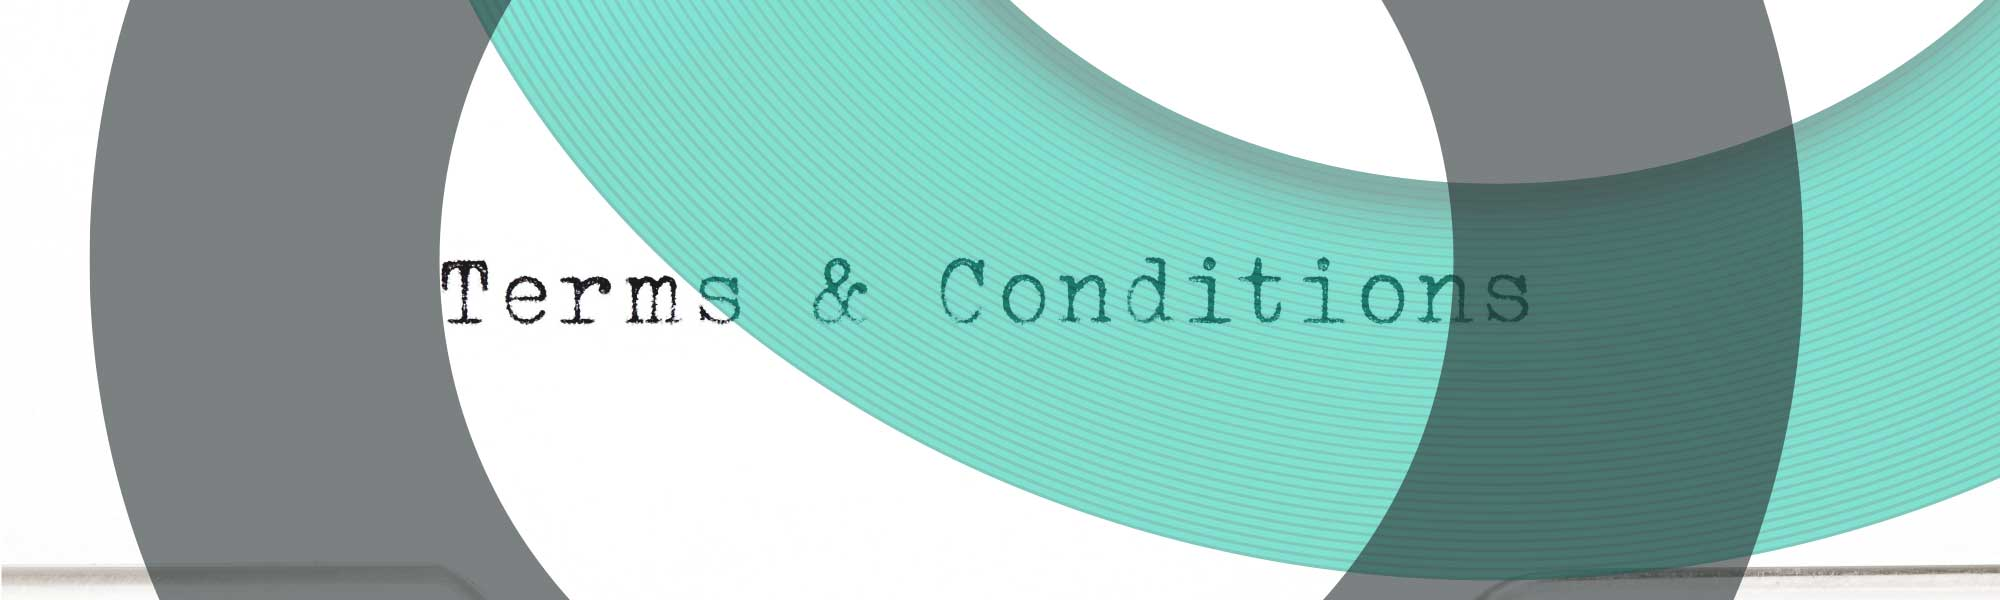 NUI - Terms & Conditions